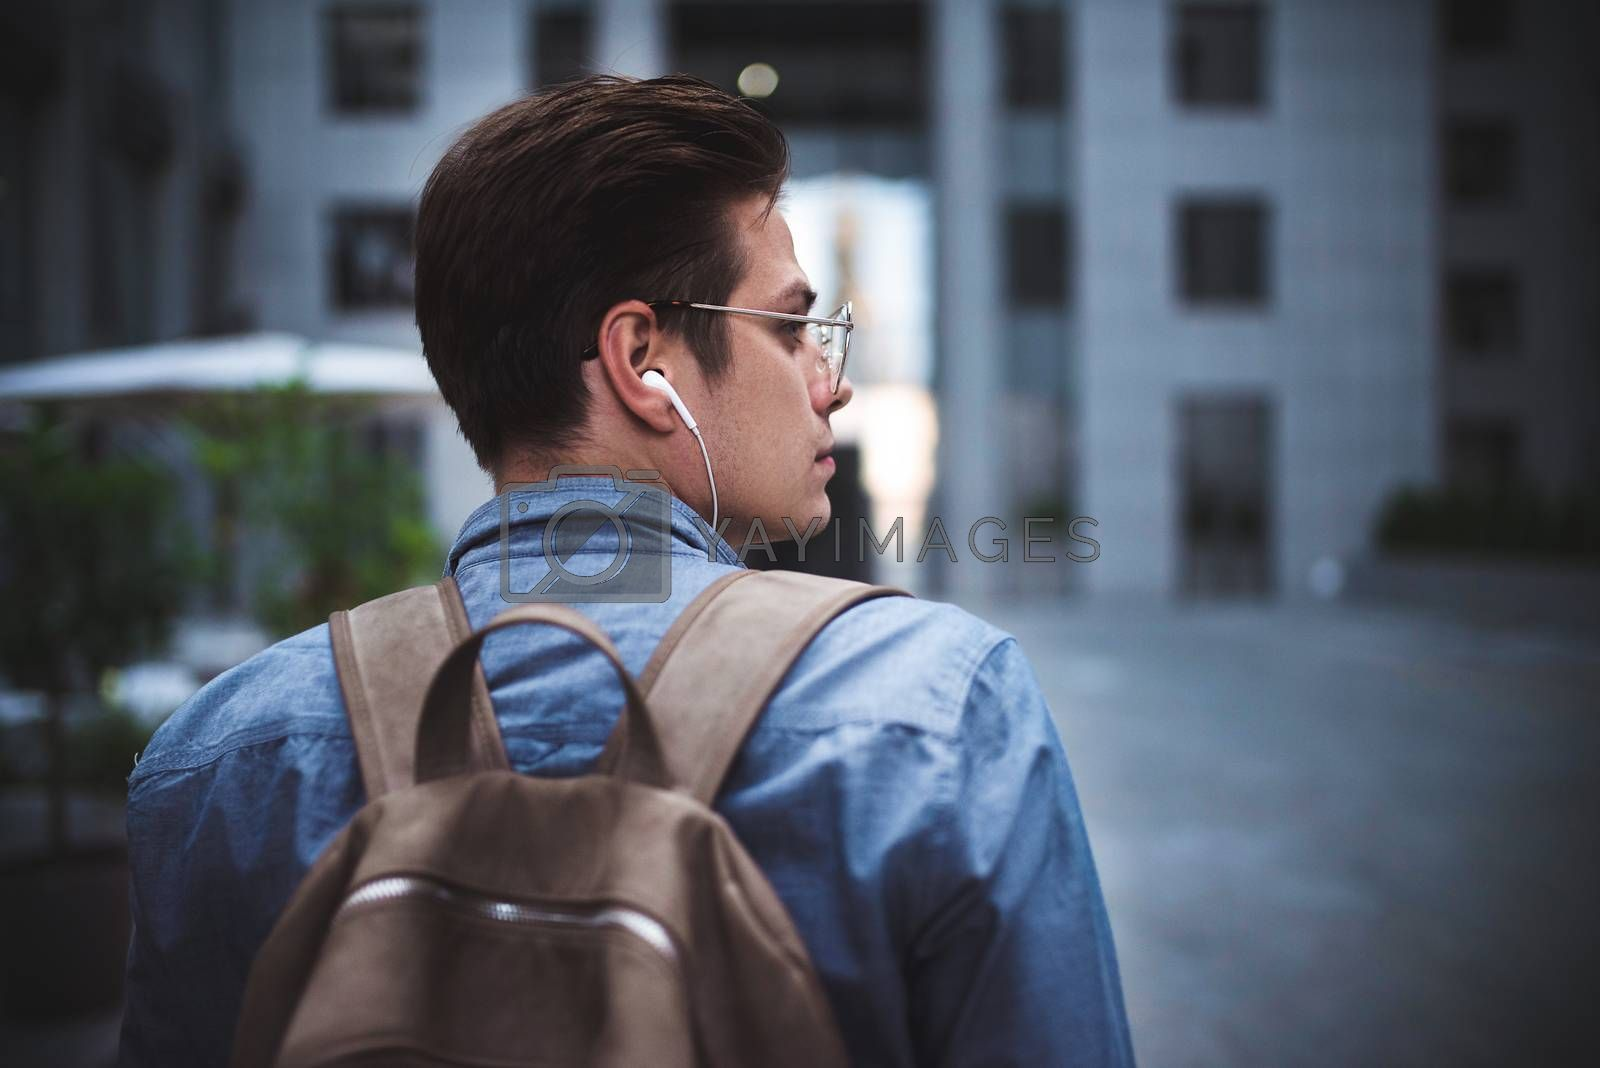 Royalty free image of Portrait of cheerful young handsome well dressed man with headphones thinking about new project. by Nickstock